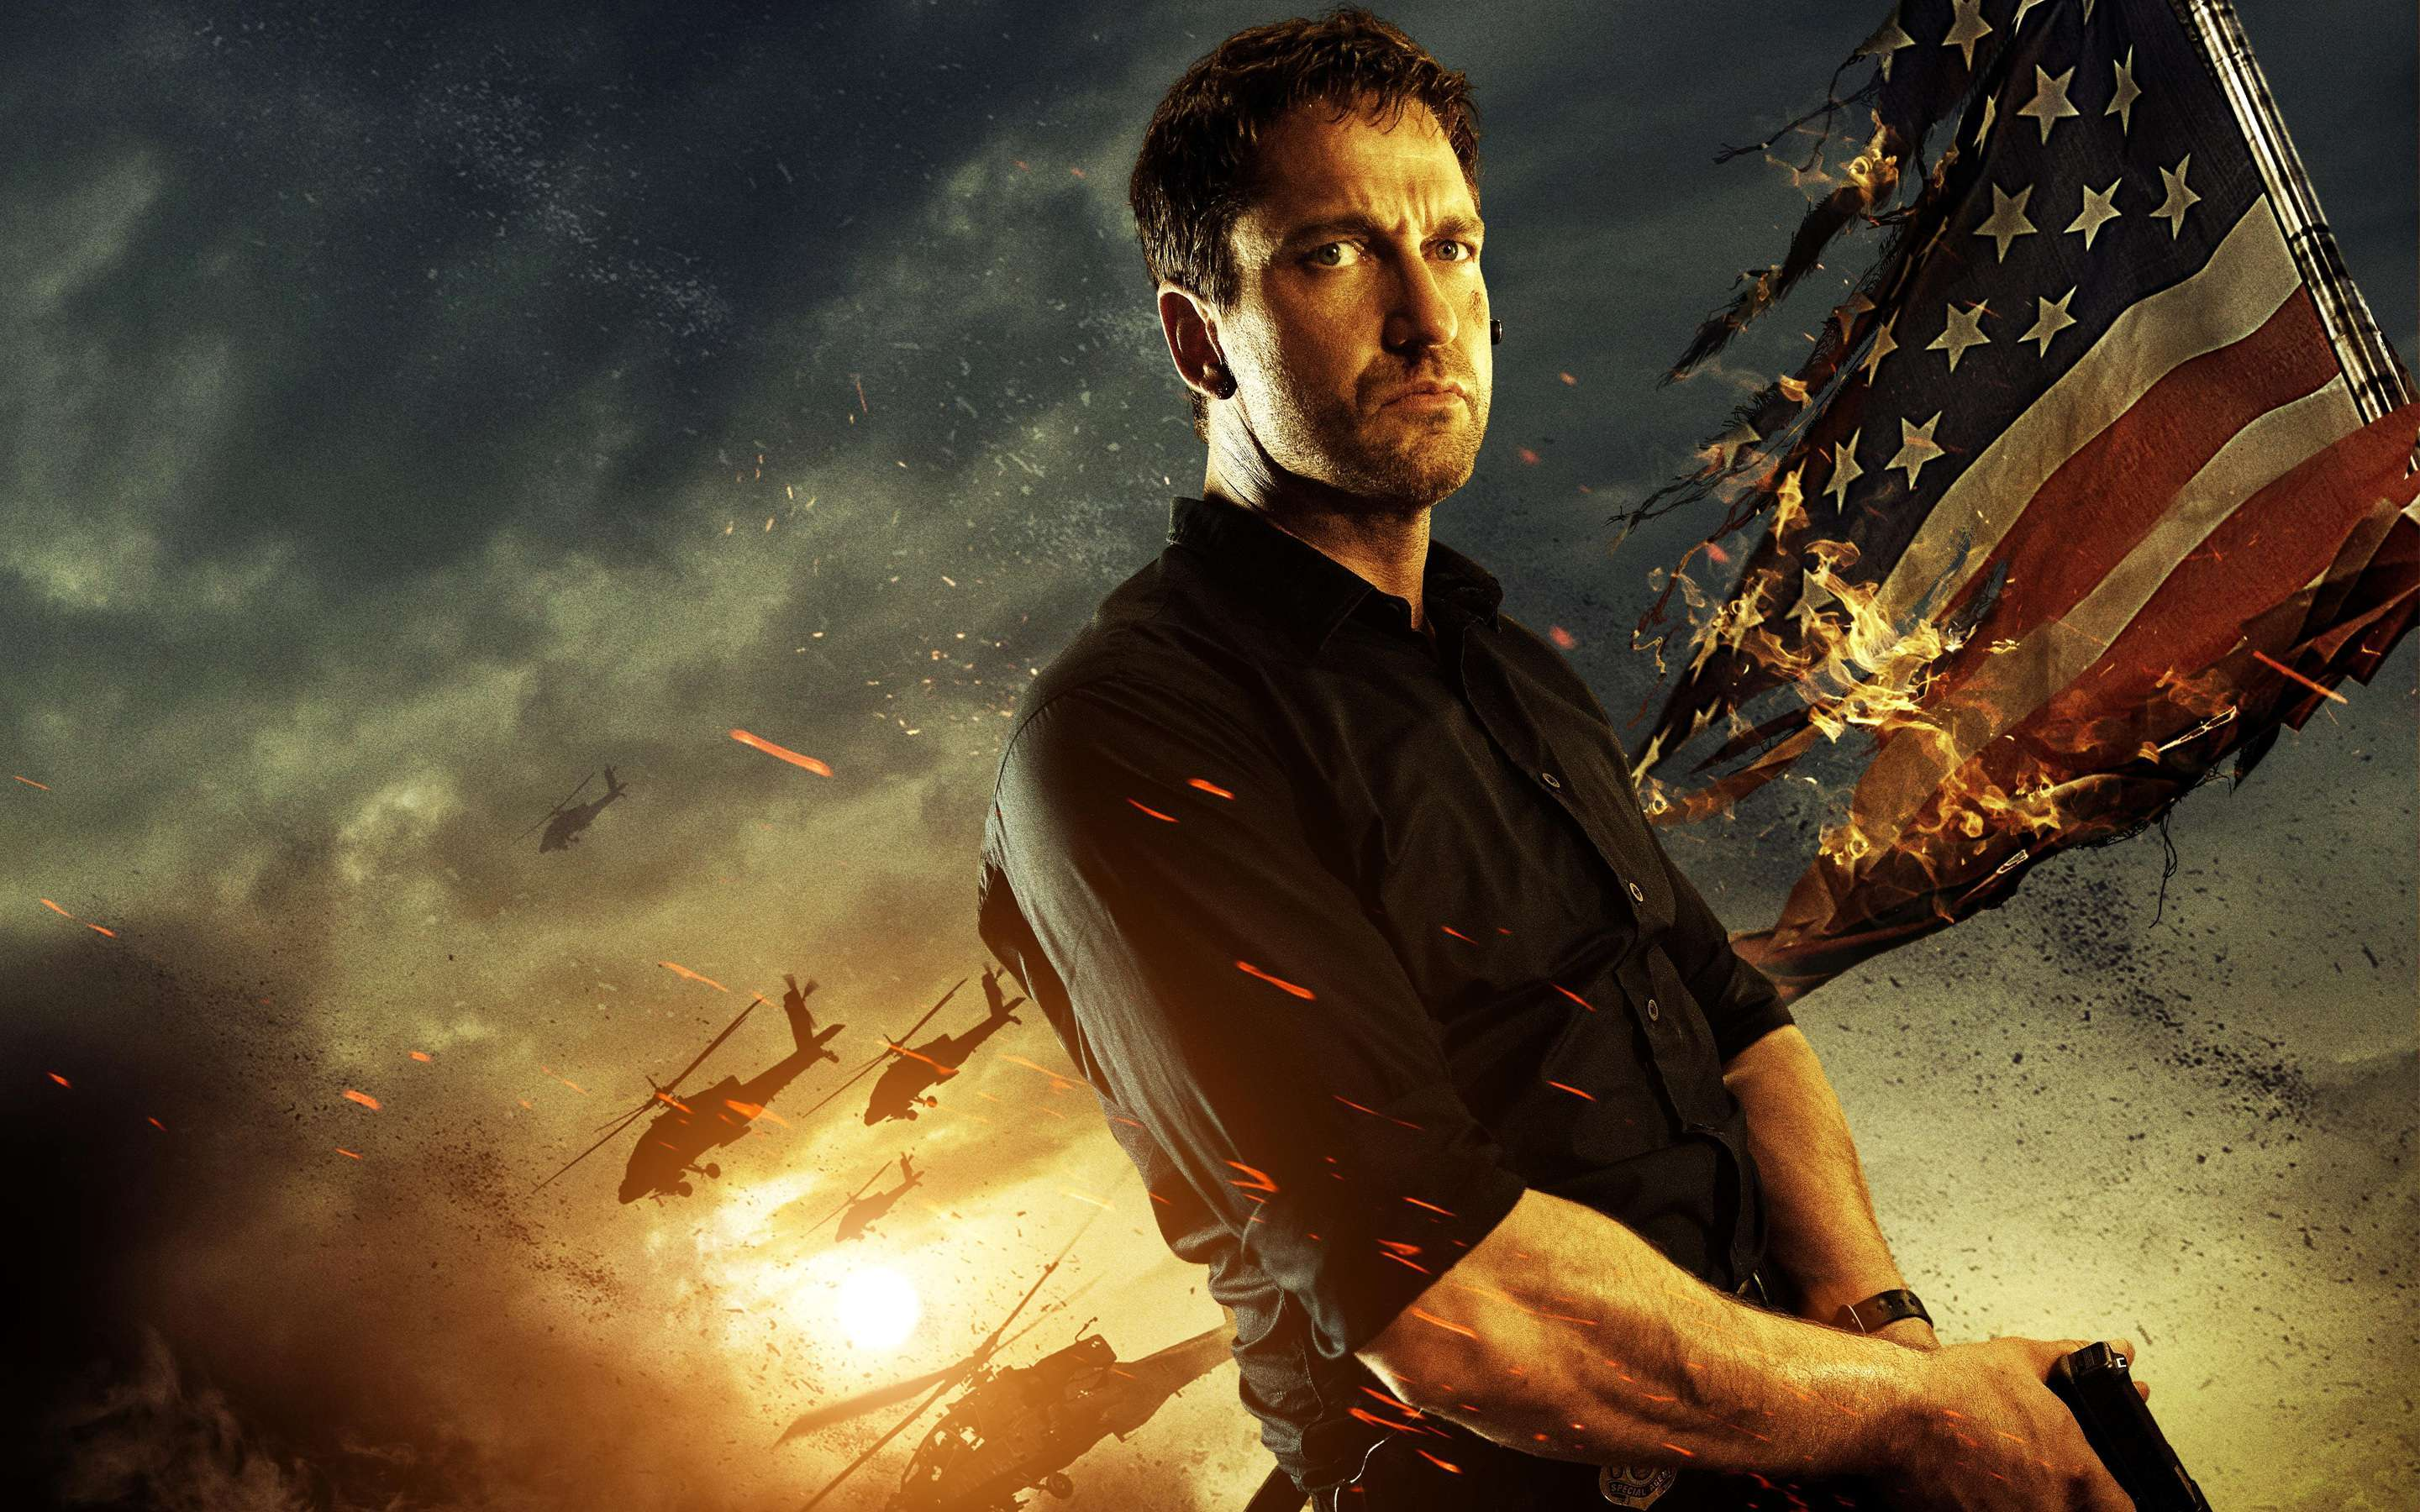 Gerard Butler In Olympus Has Fallen Wallpapers Hd Wallpapers 2880x1800